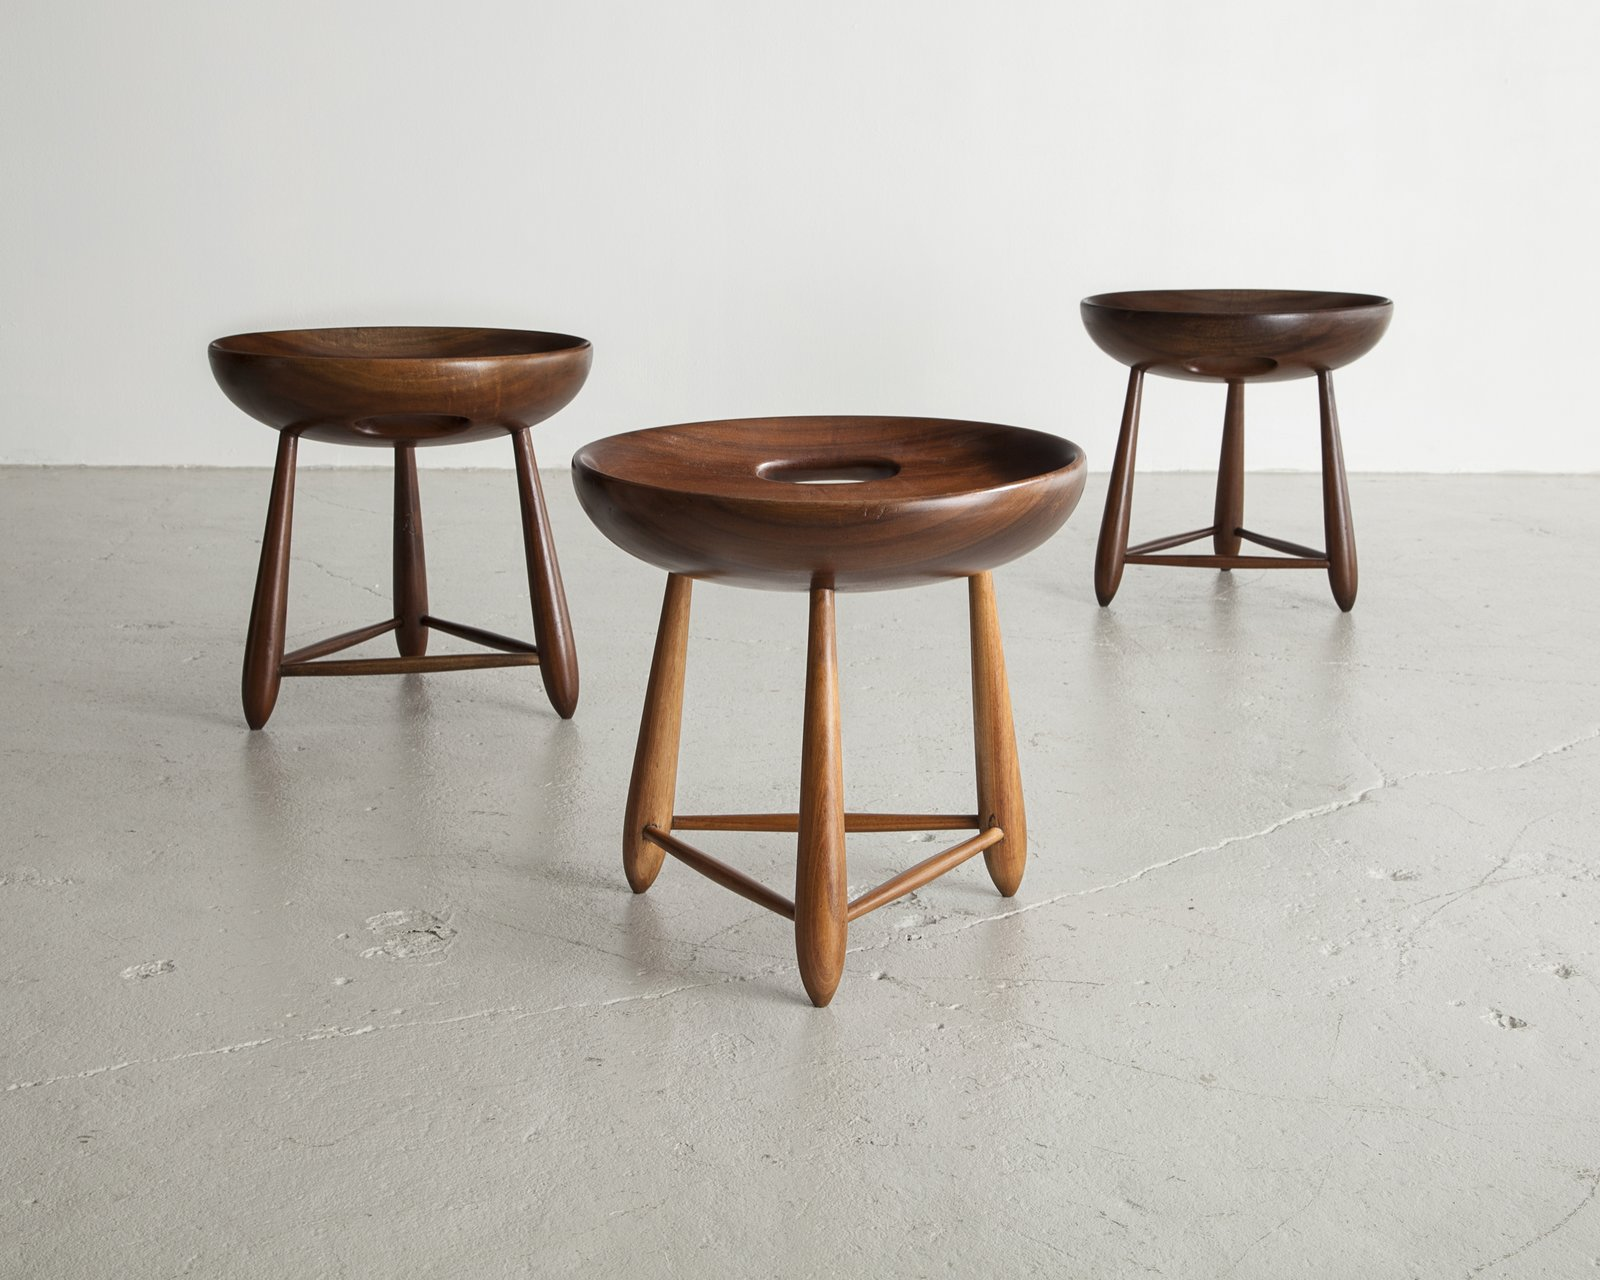 With signature materials like leather and wood, Sergio Rodrigues injected warmth and softness into his version of modernism. Here is a set of three-legged milking stools in Brazilian hardwood designed for Oca in 1954.  100+ Best Modern Seating Designs from Bring the Best of Brazilian Modernism to Your Home with This New Book